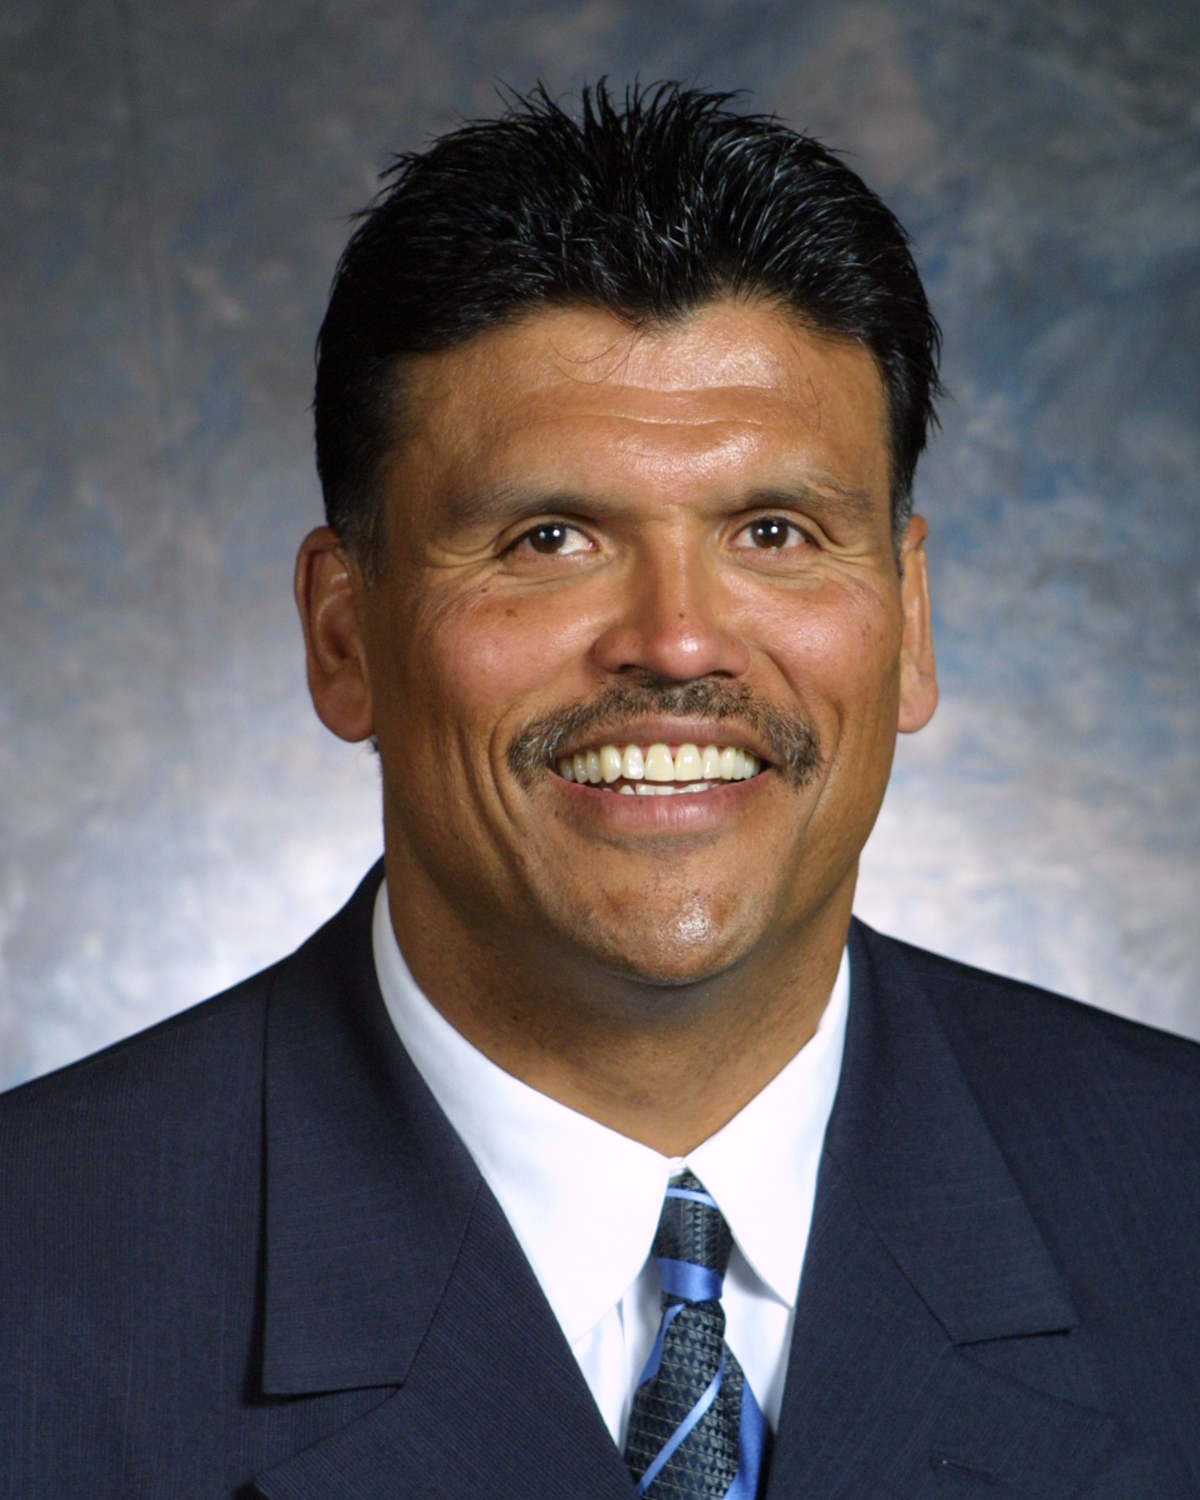 Anthony Munoz Celebrities - Cincinnati Makeup Artist Jodi Byrne